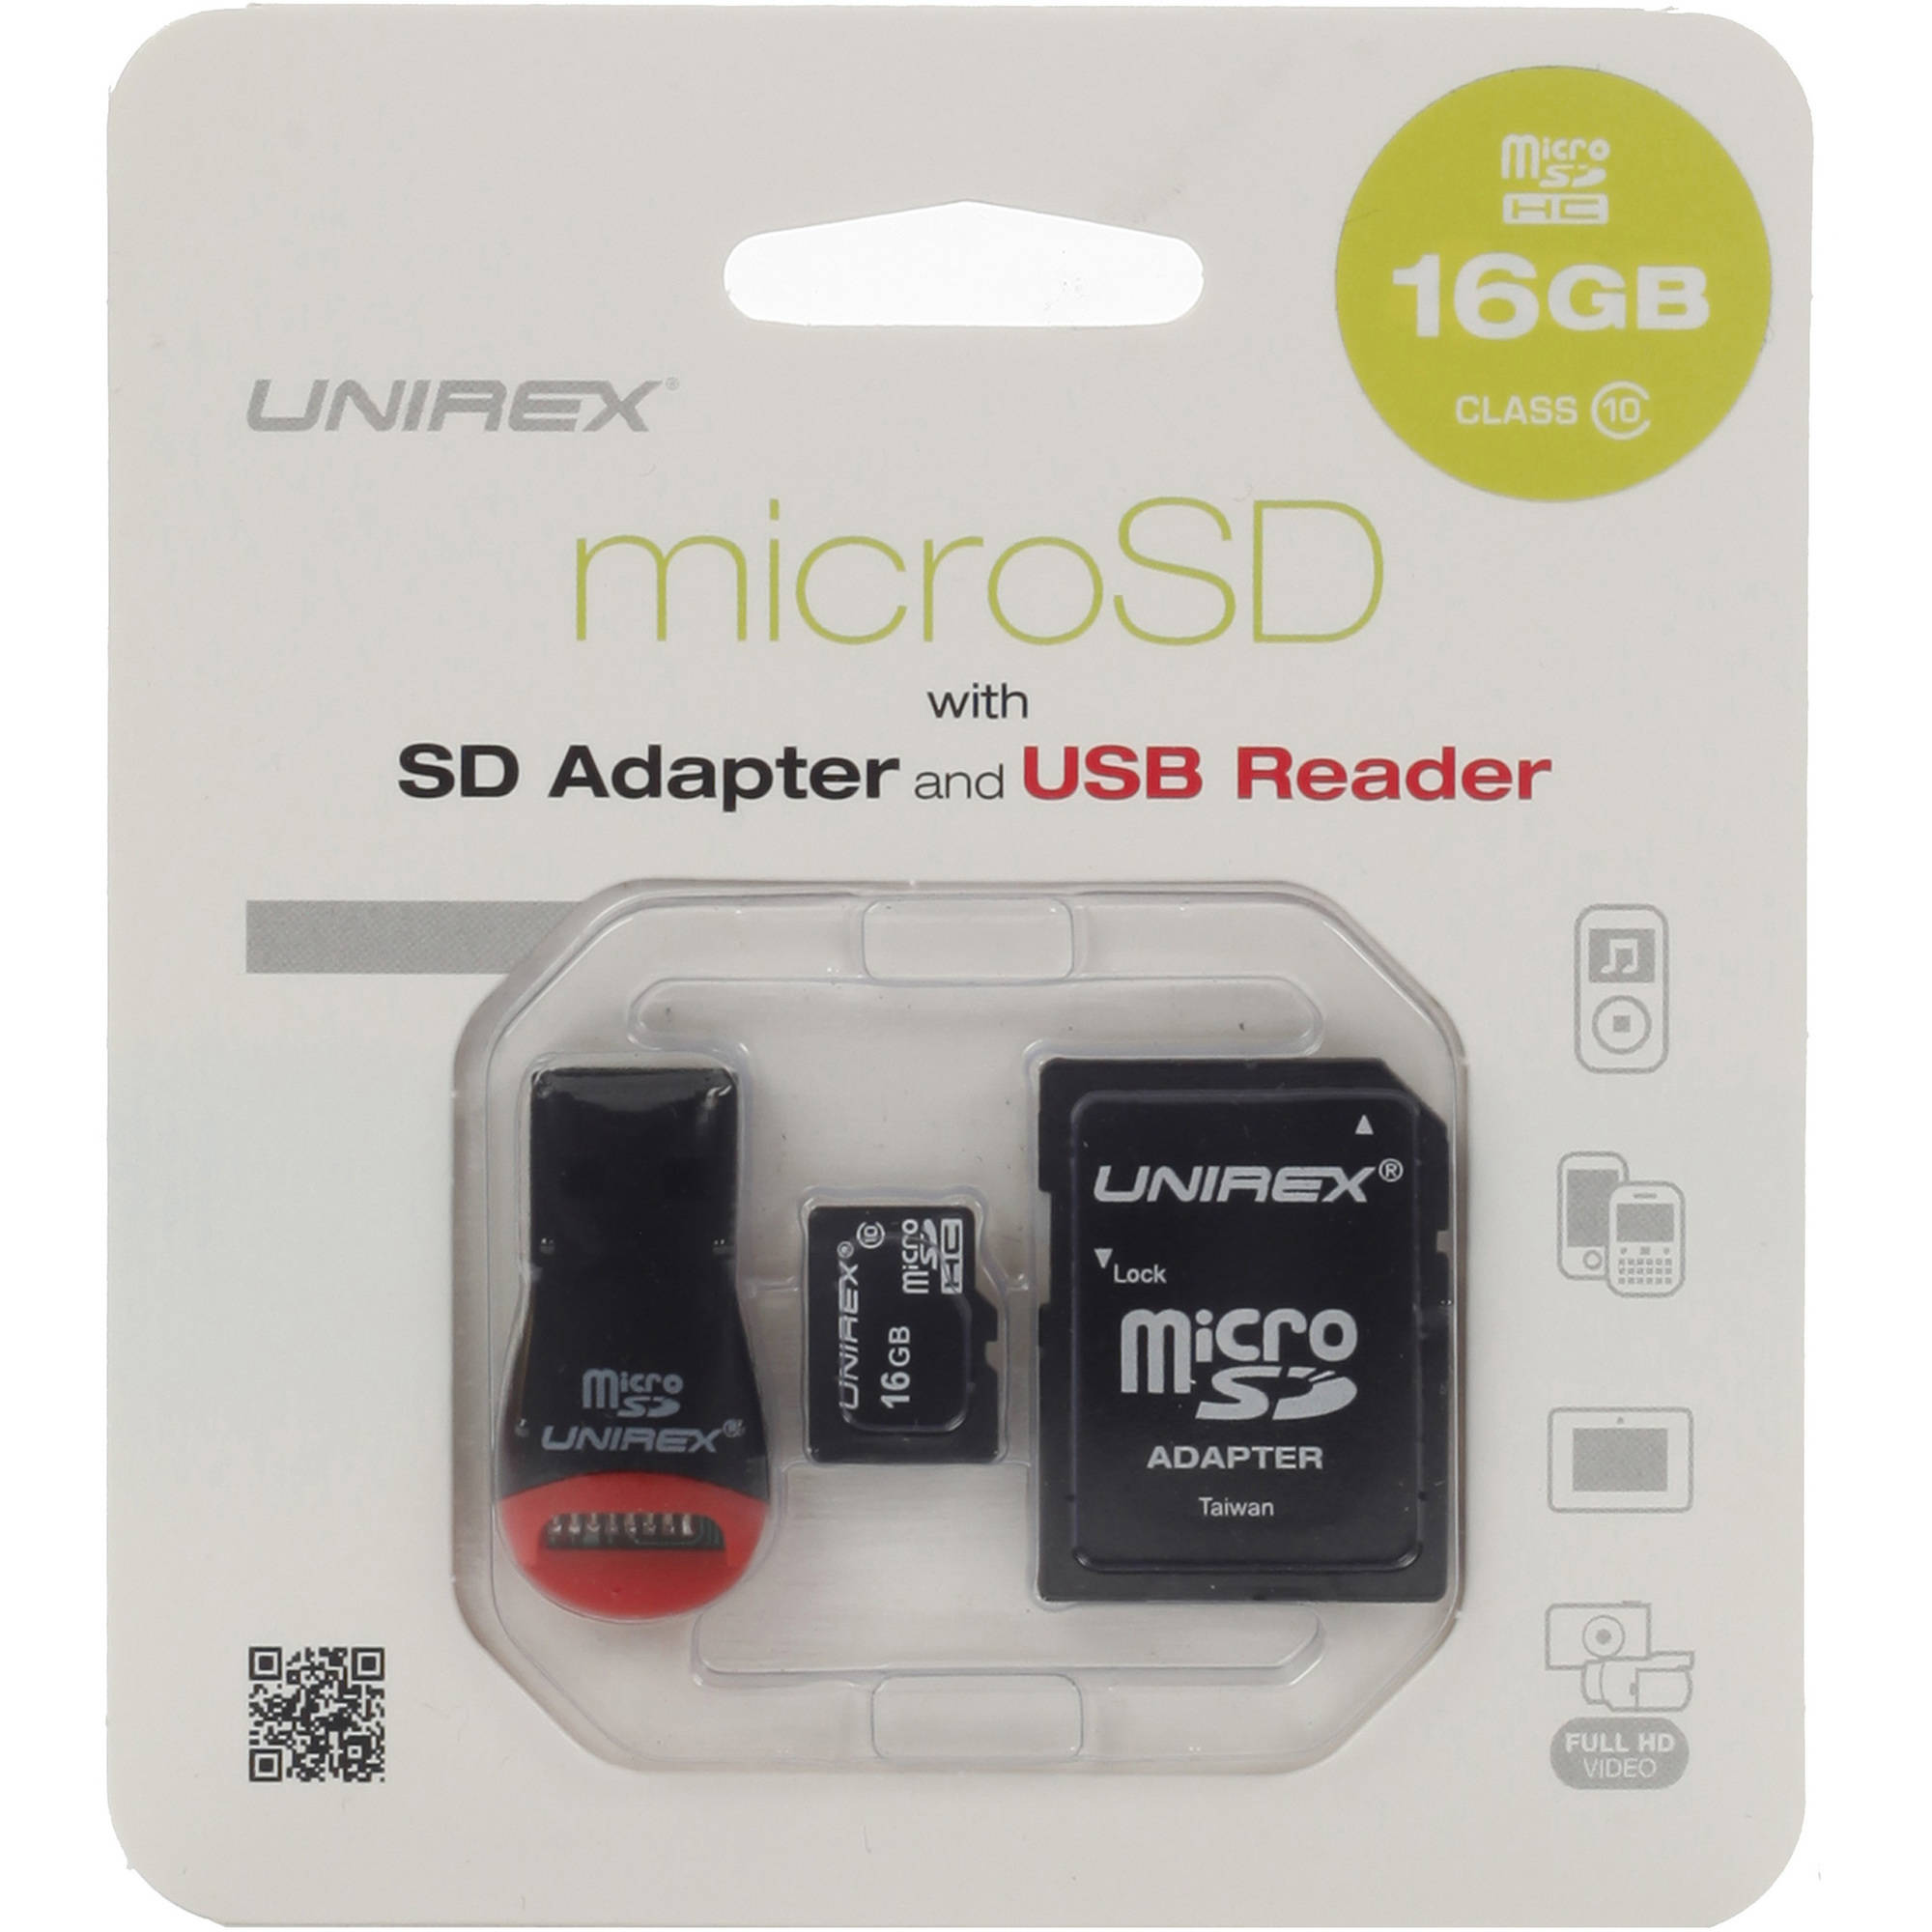 Unirex microSD 16GB Class 10 with USB Reader